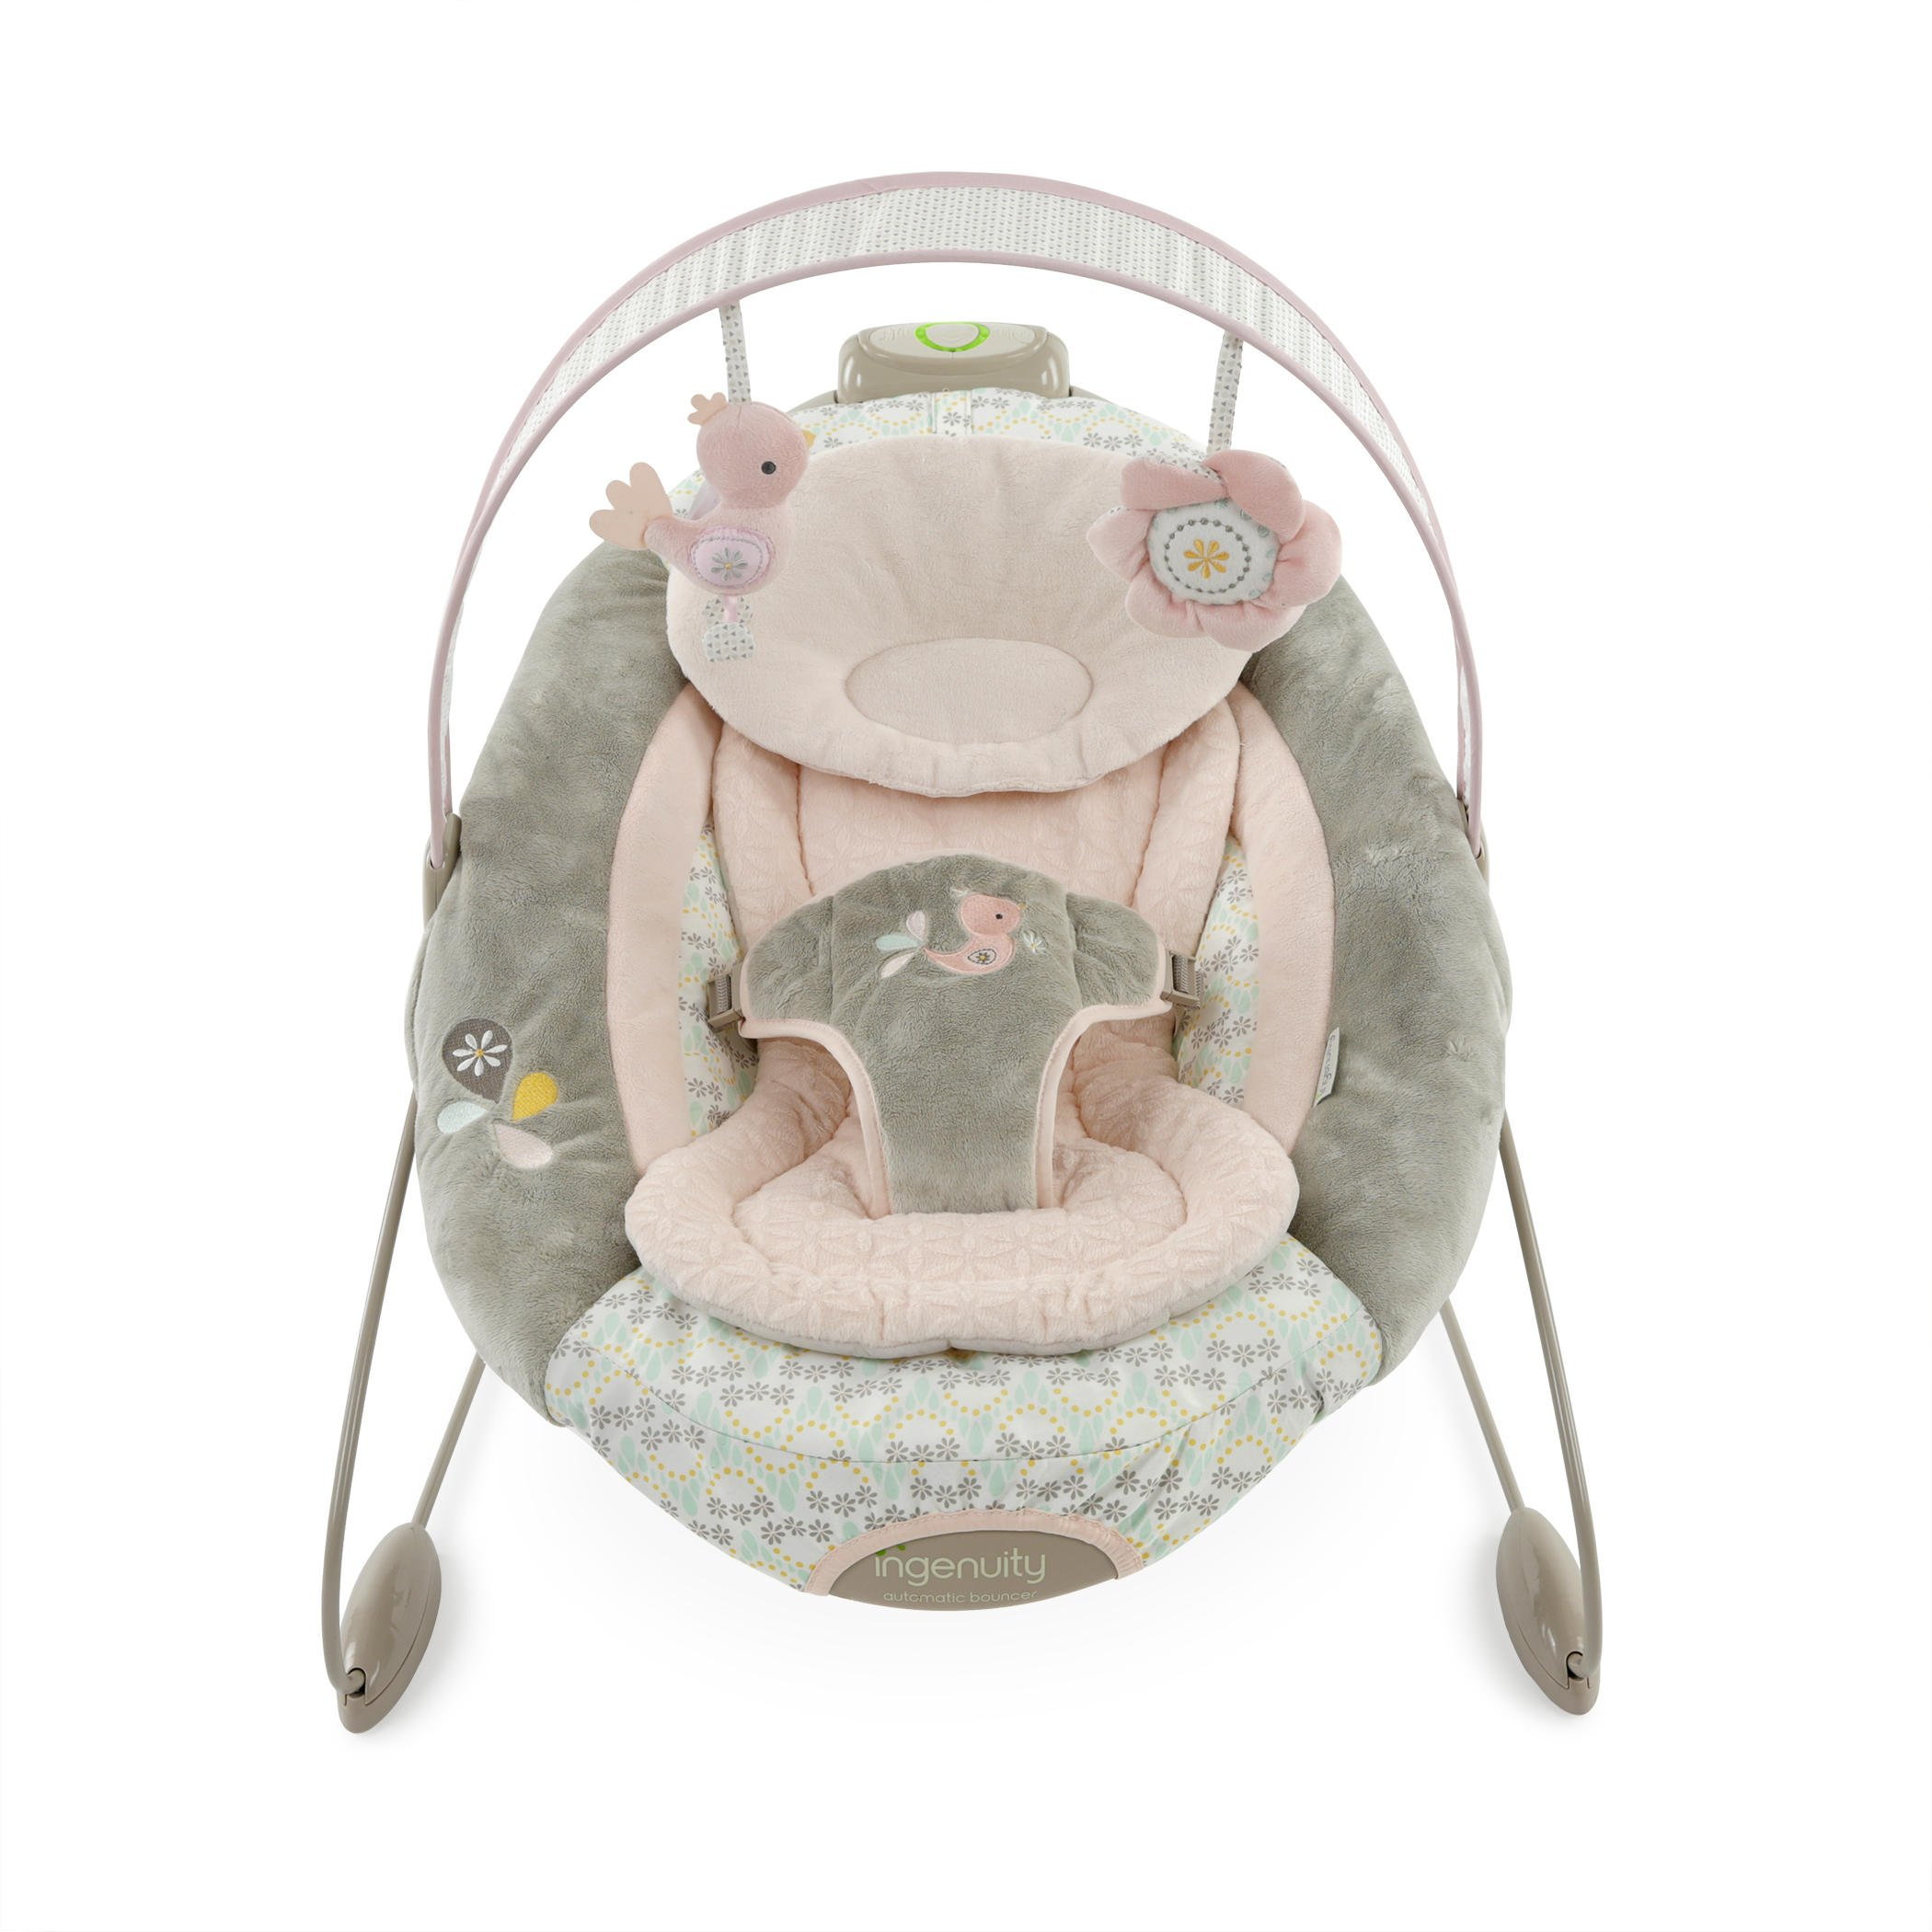 Ingenuity SmartBounce Automatic Bouncer - Piper